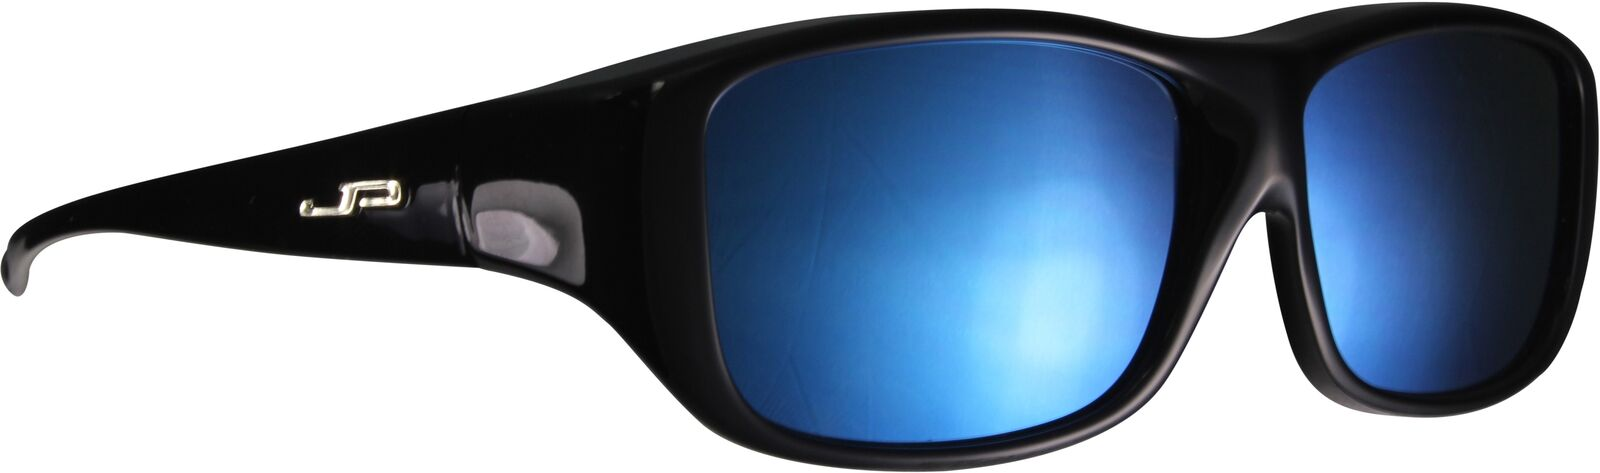 bde4893ab9 Jonathan Paul Fitovers Eyewear Large Quamby in Eternal Black   Blue ...